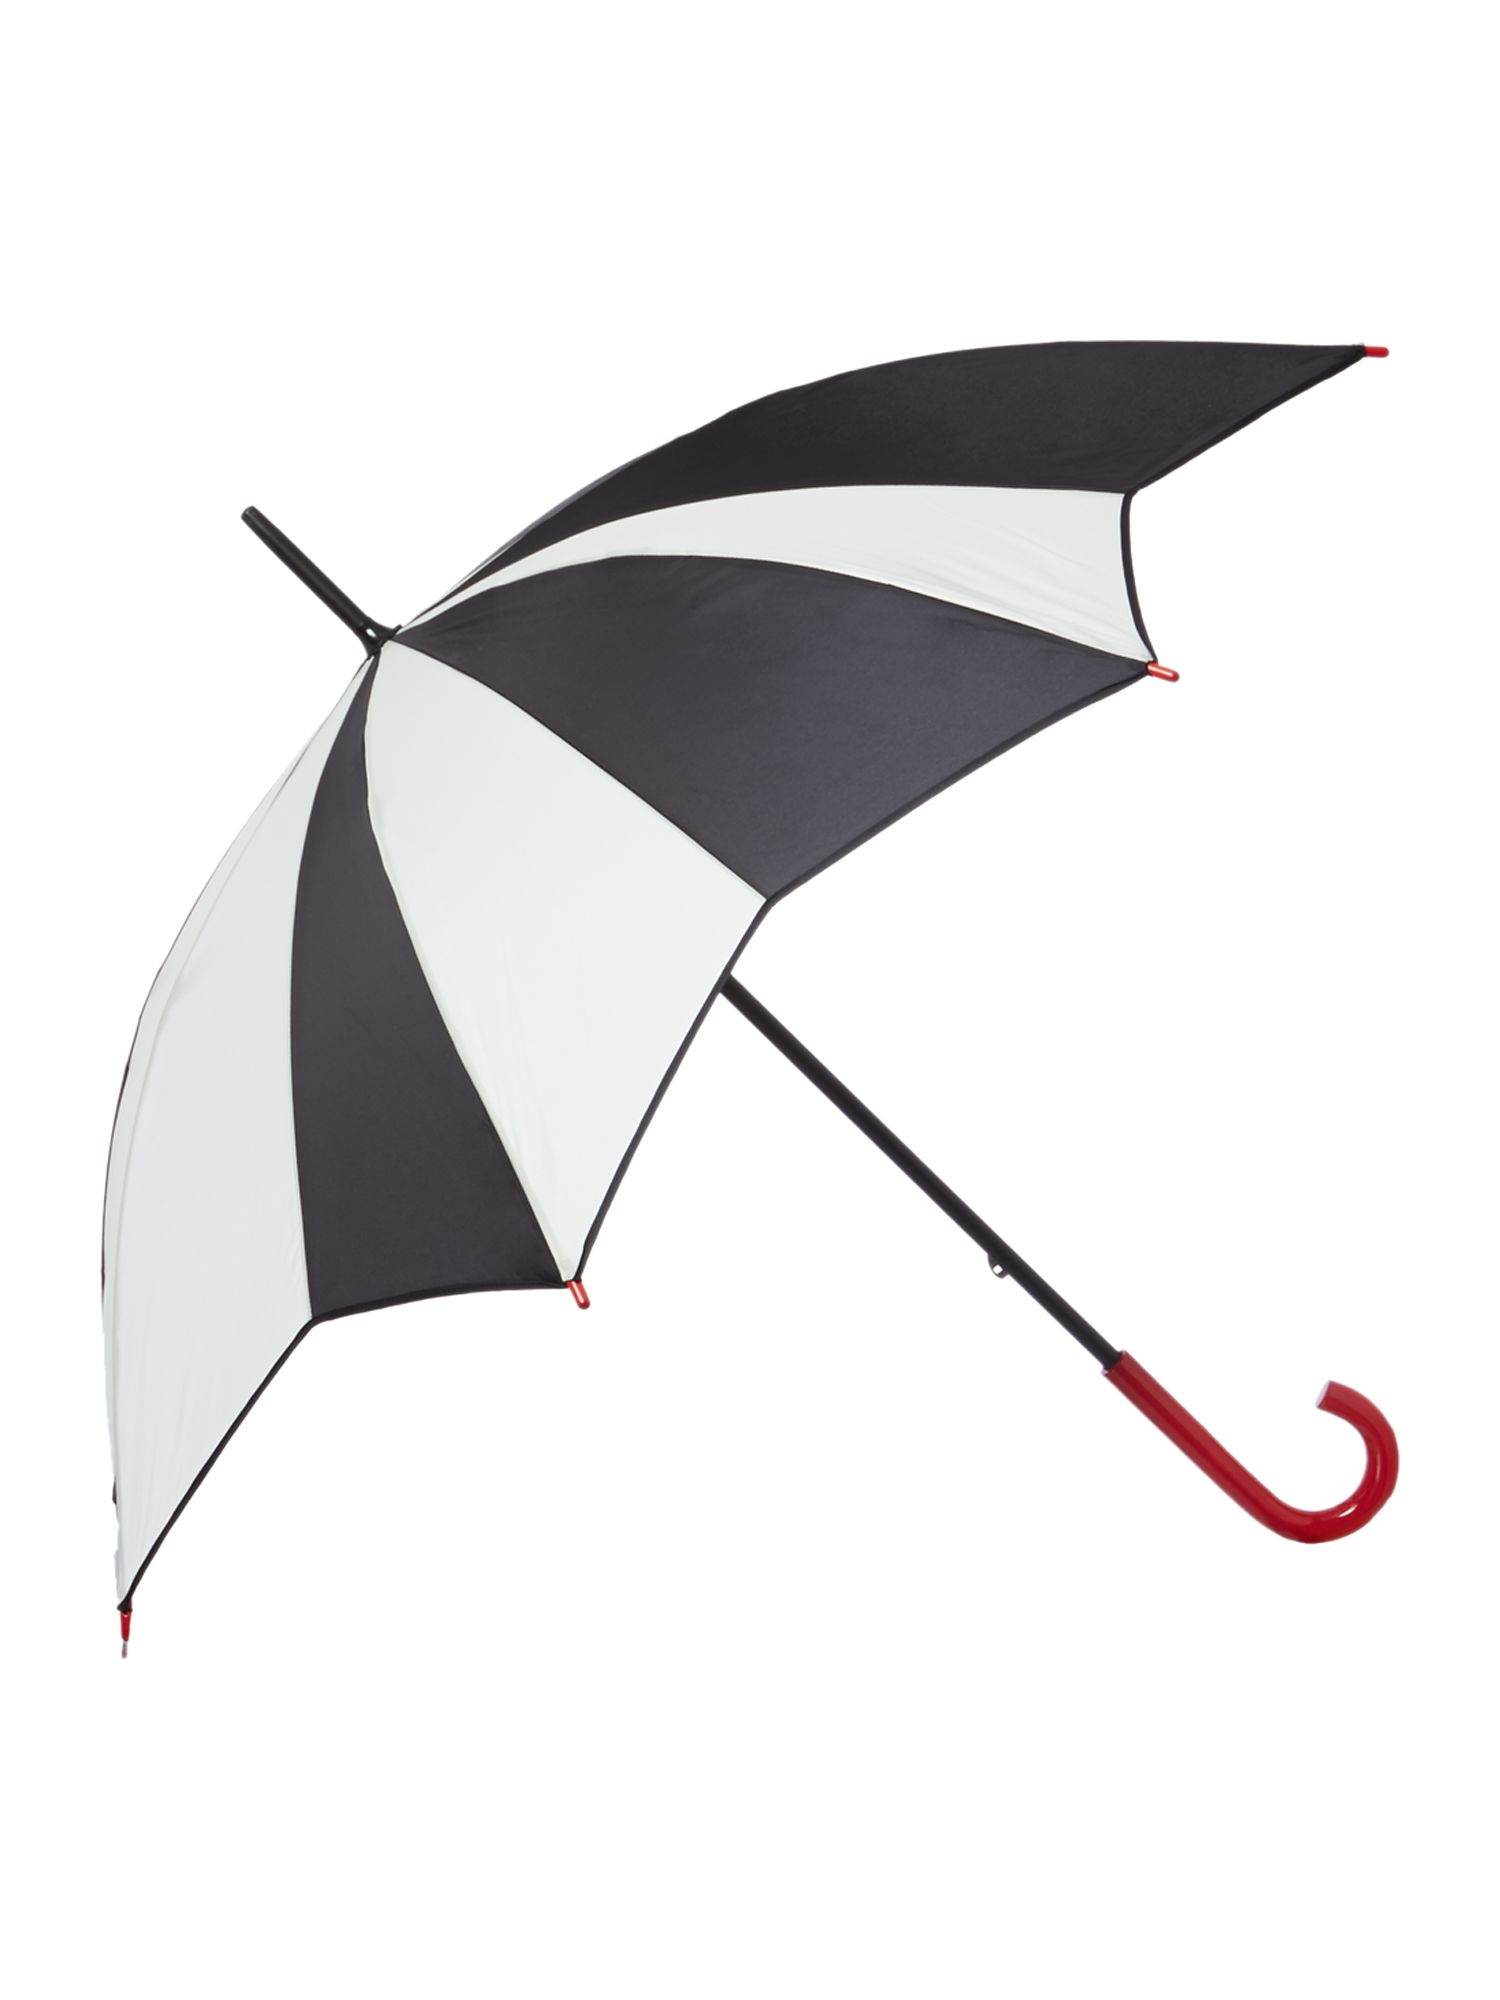 Harlequin Kensington umbrella